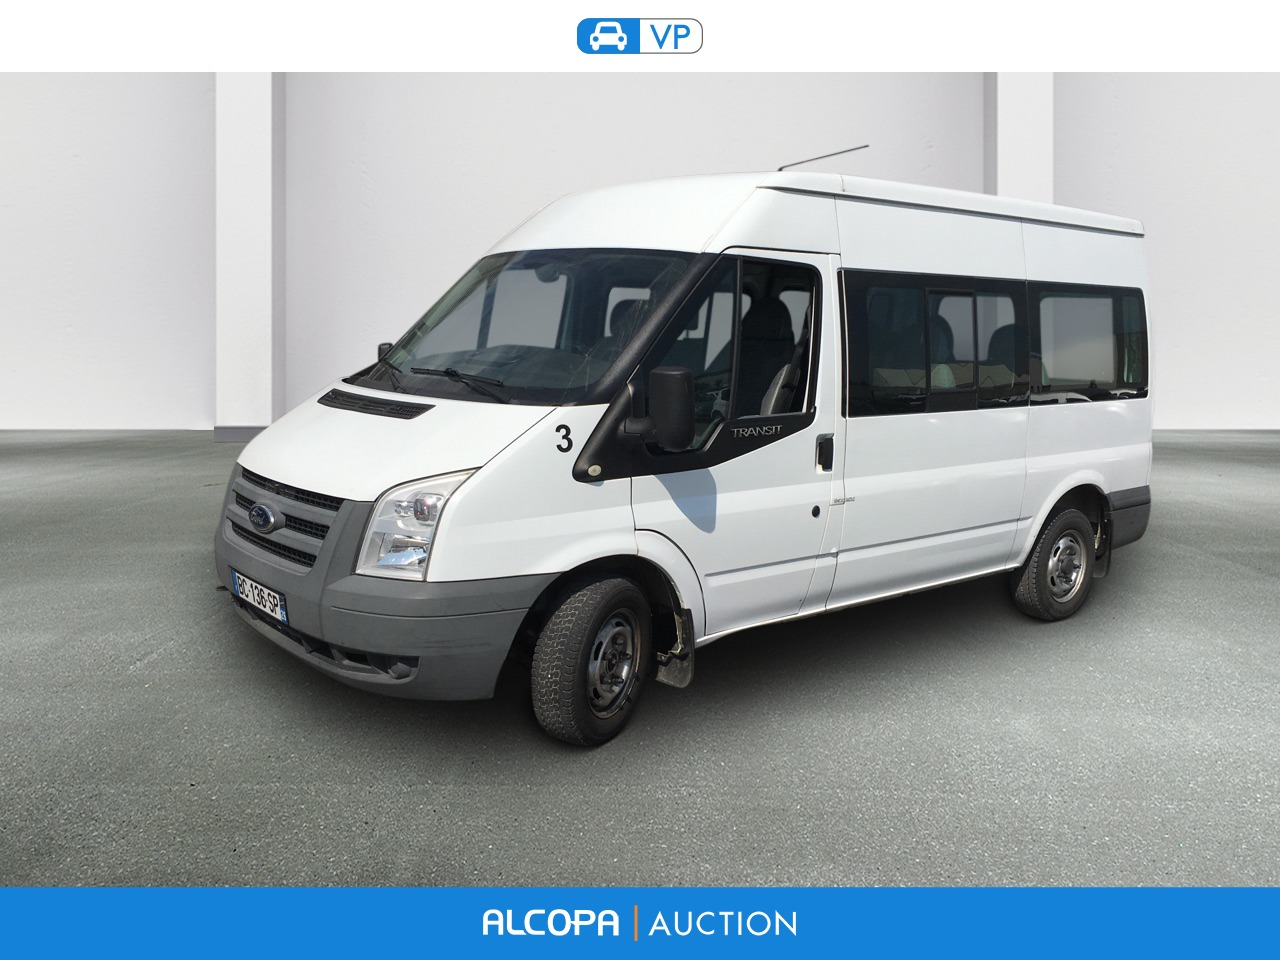 ford transit kombi transit 300 m tdci 85 alcopa auction. Black Bedroom Furniture Sets. Home Design Ideas